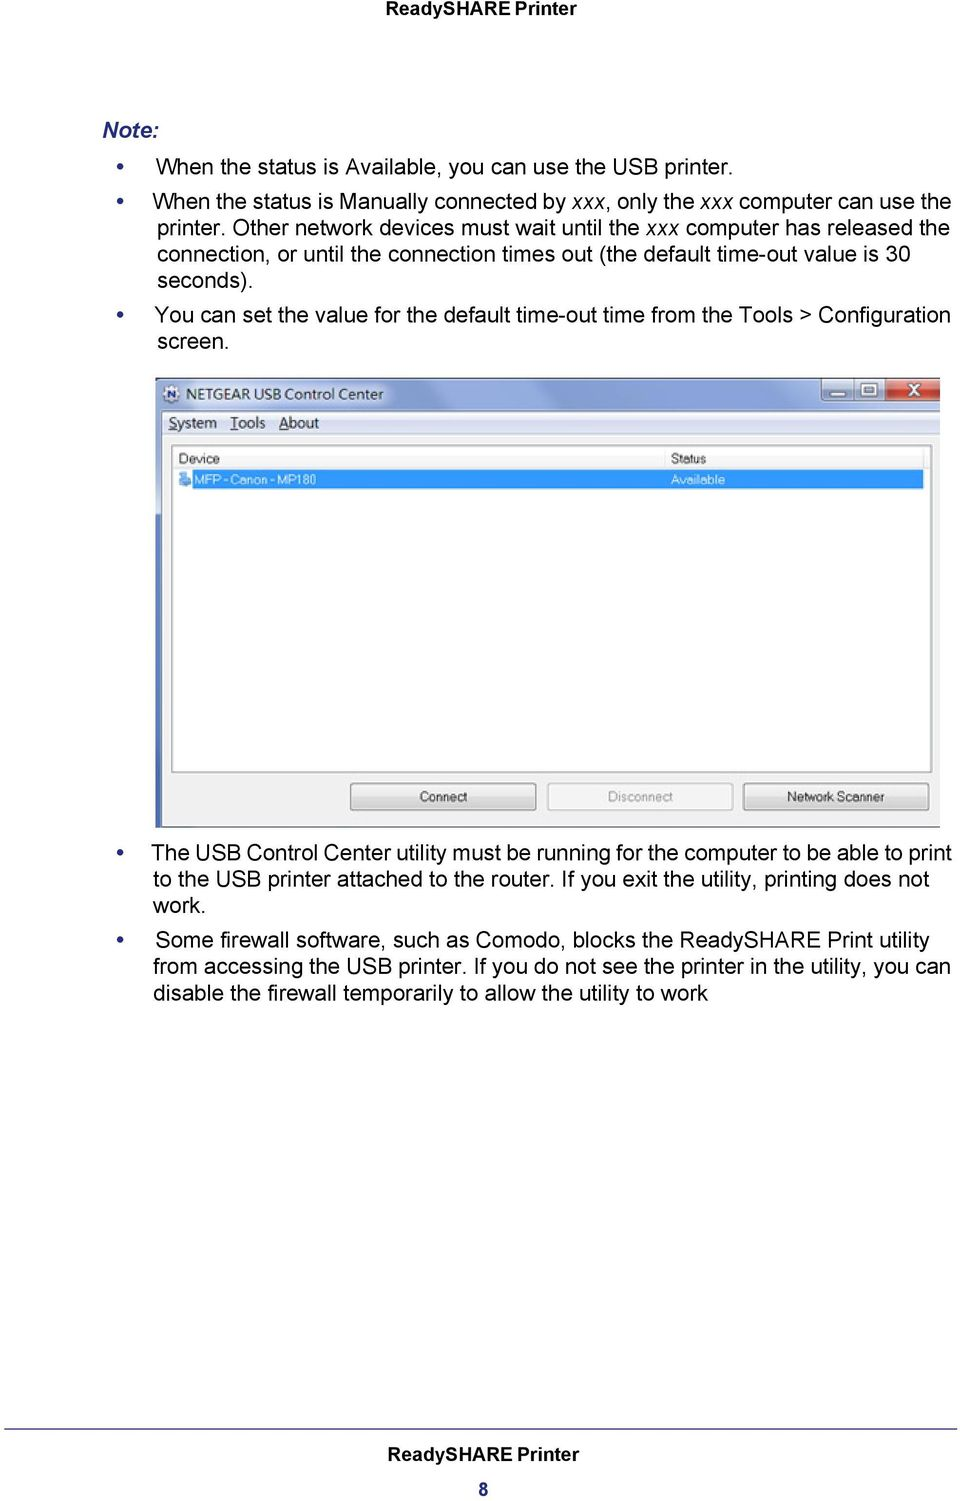 You can set the value for the default time-out time from the Tools > Configuration screen.